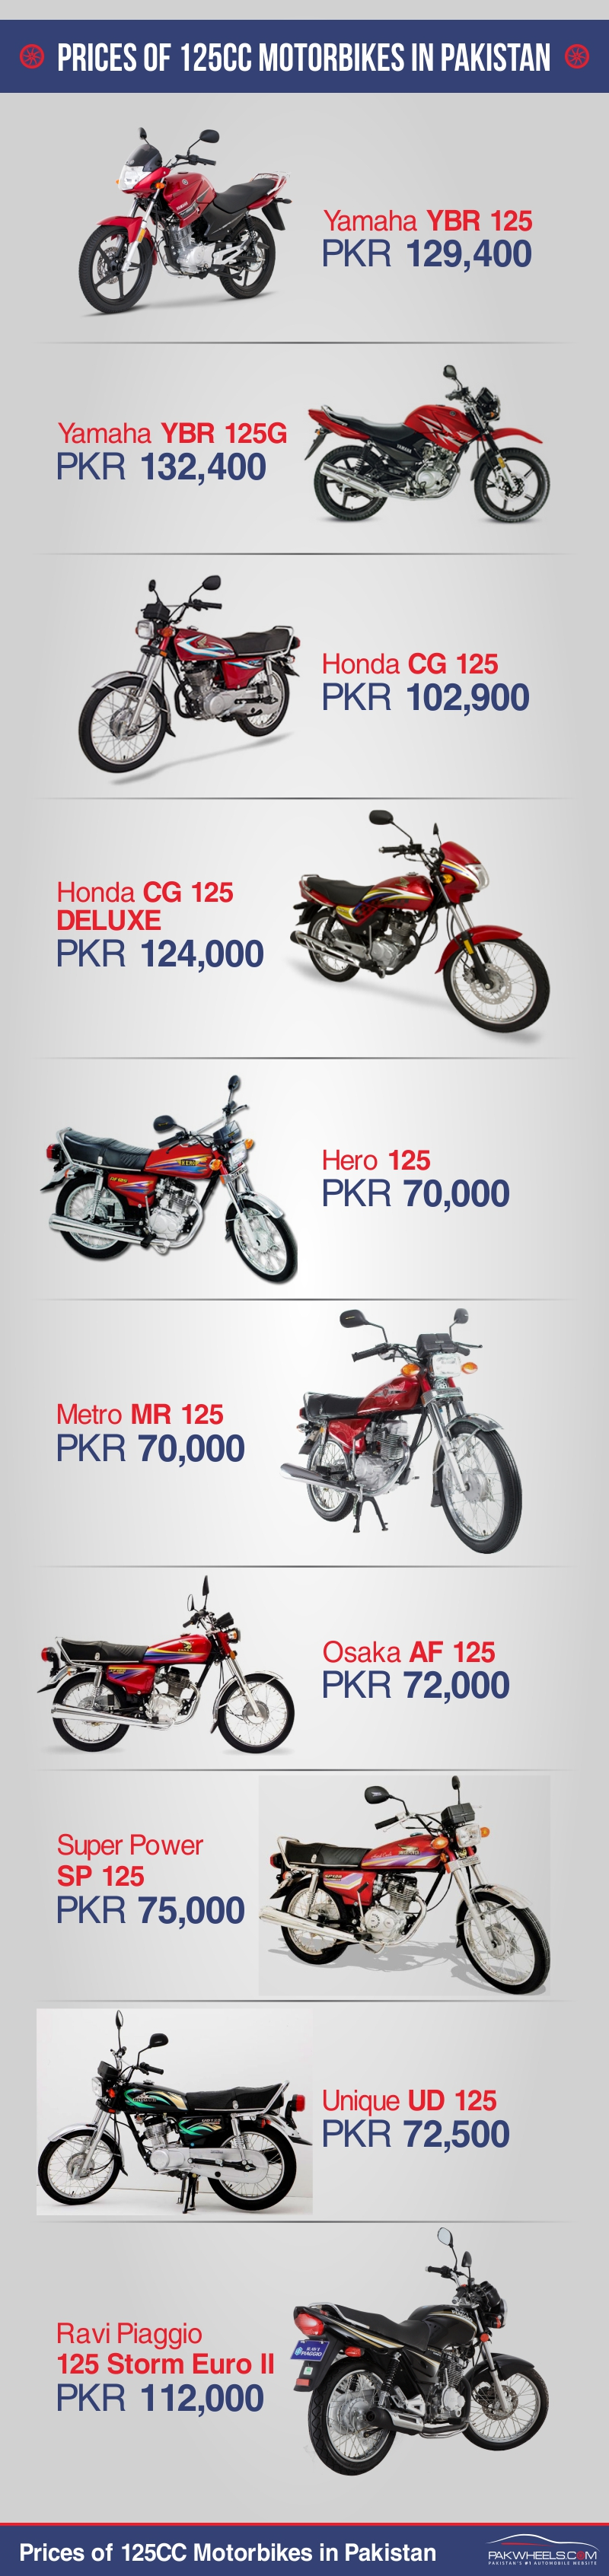 Prices of 125CC Motorbikes